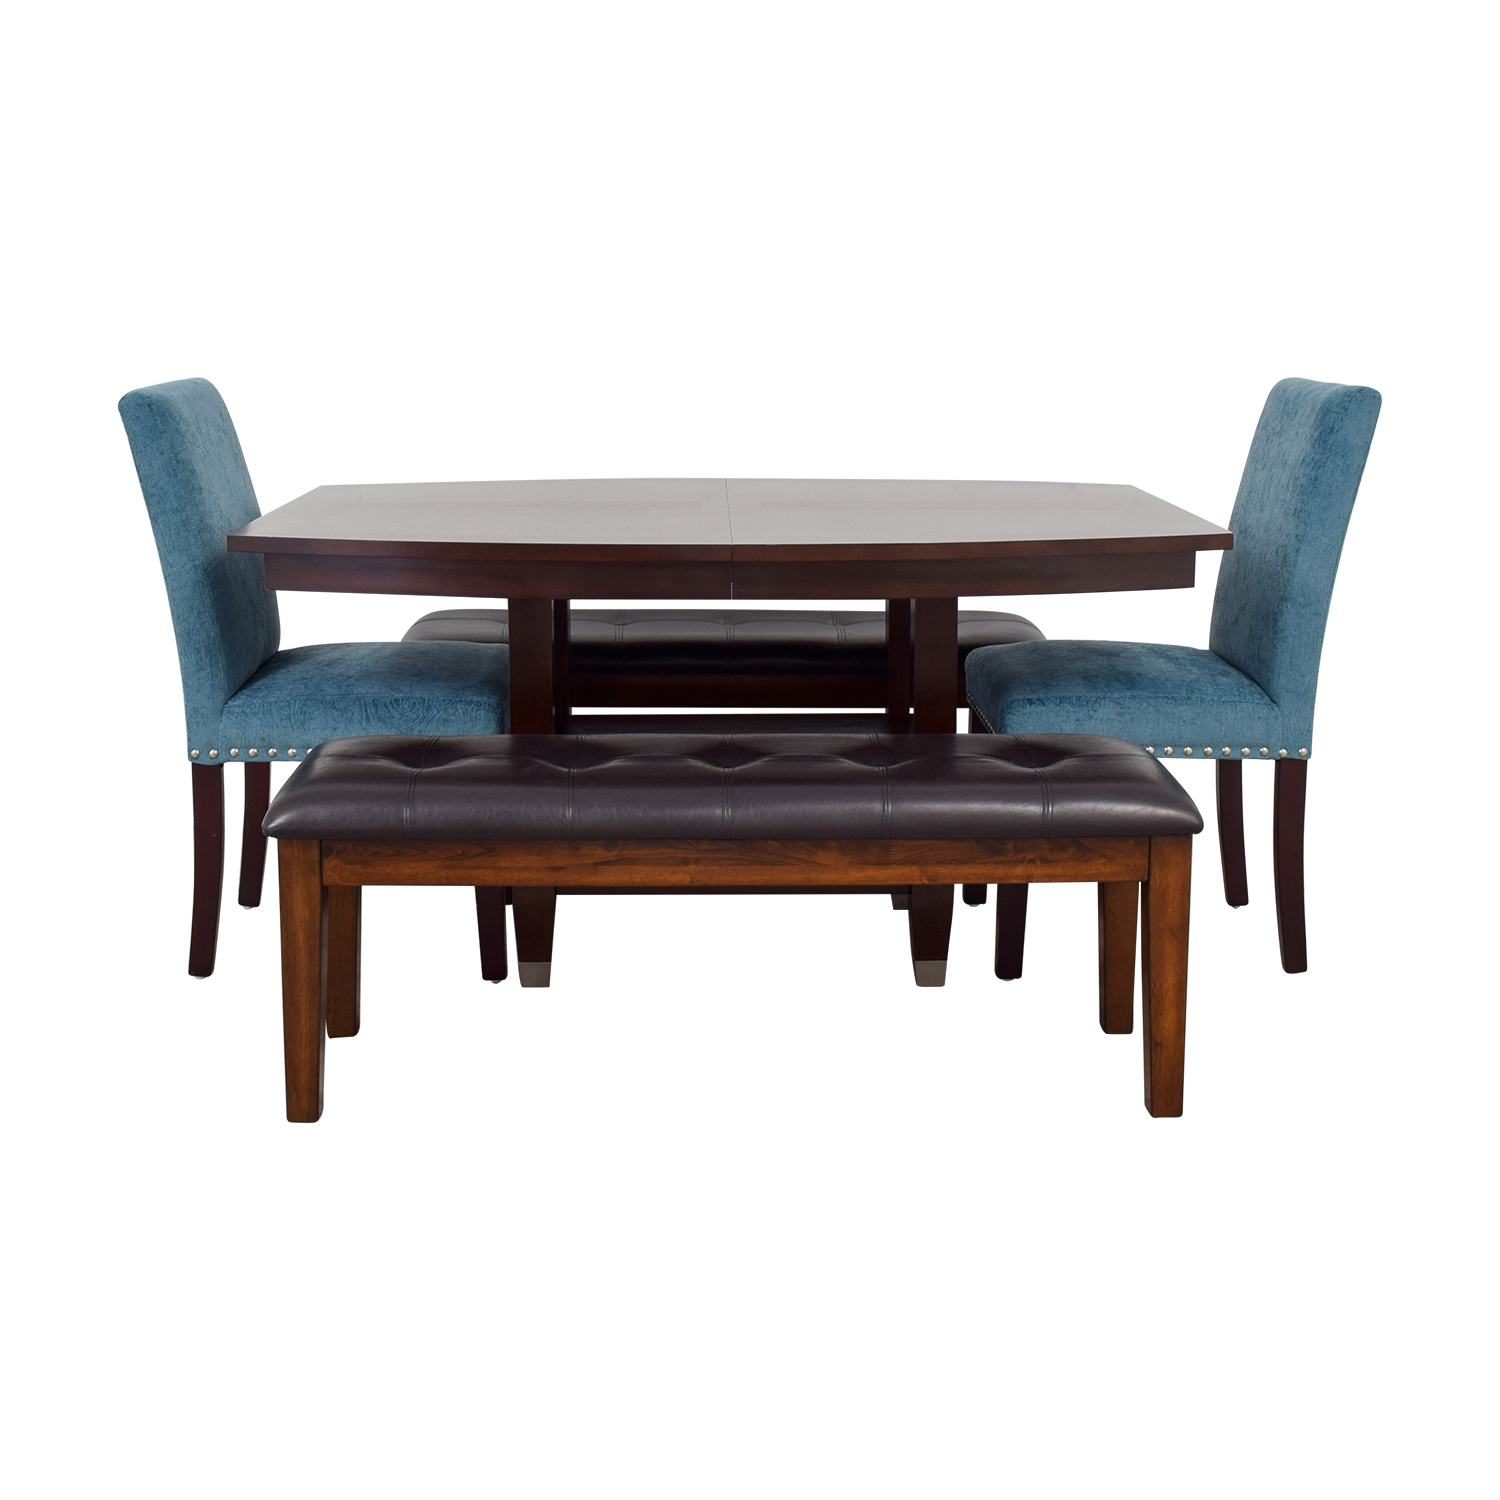 Raymour & Flanigan Dining Set with Benches and Chairs / Sofas